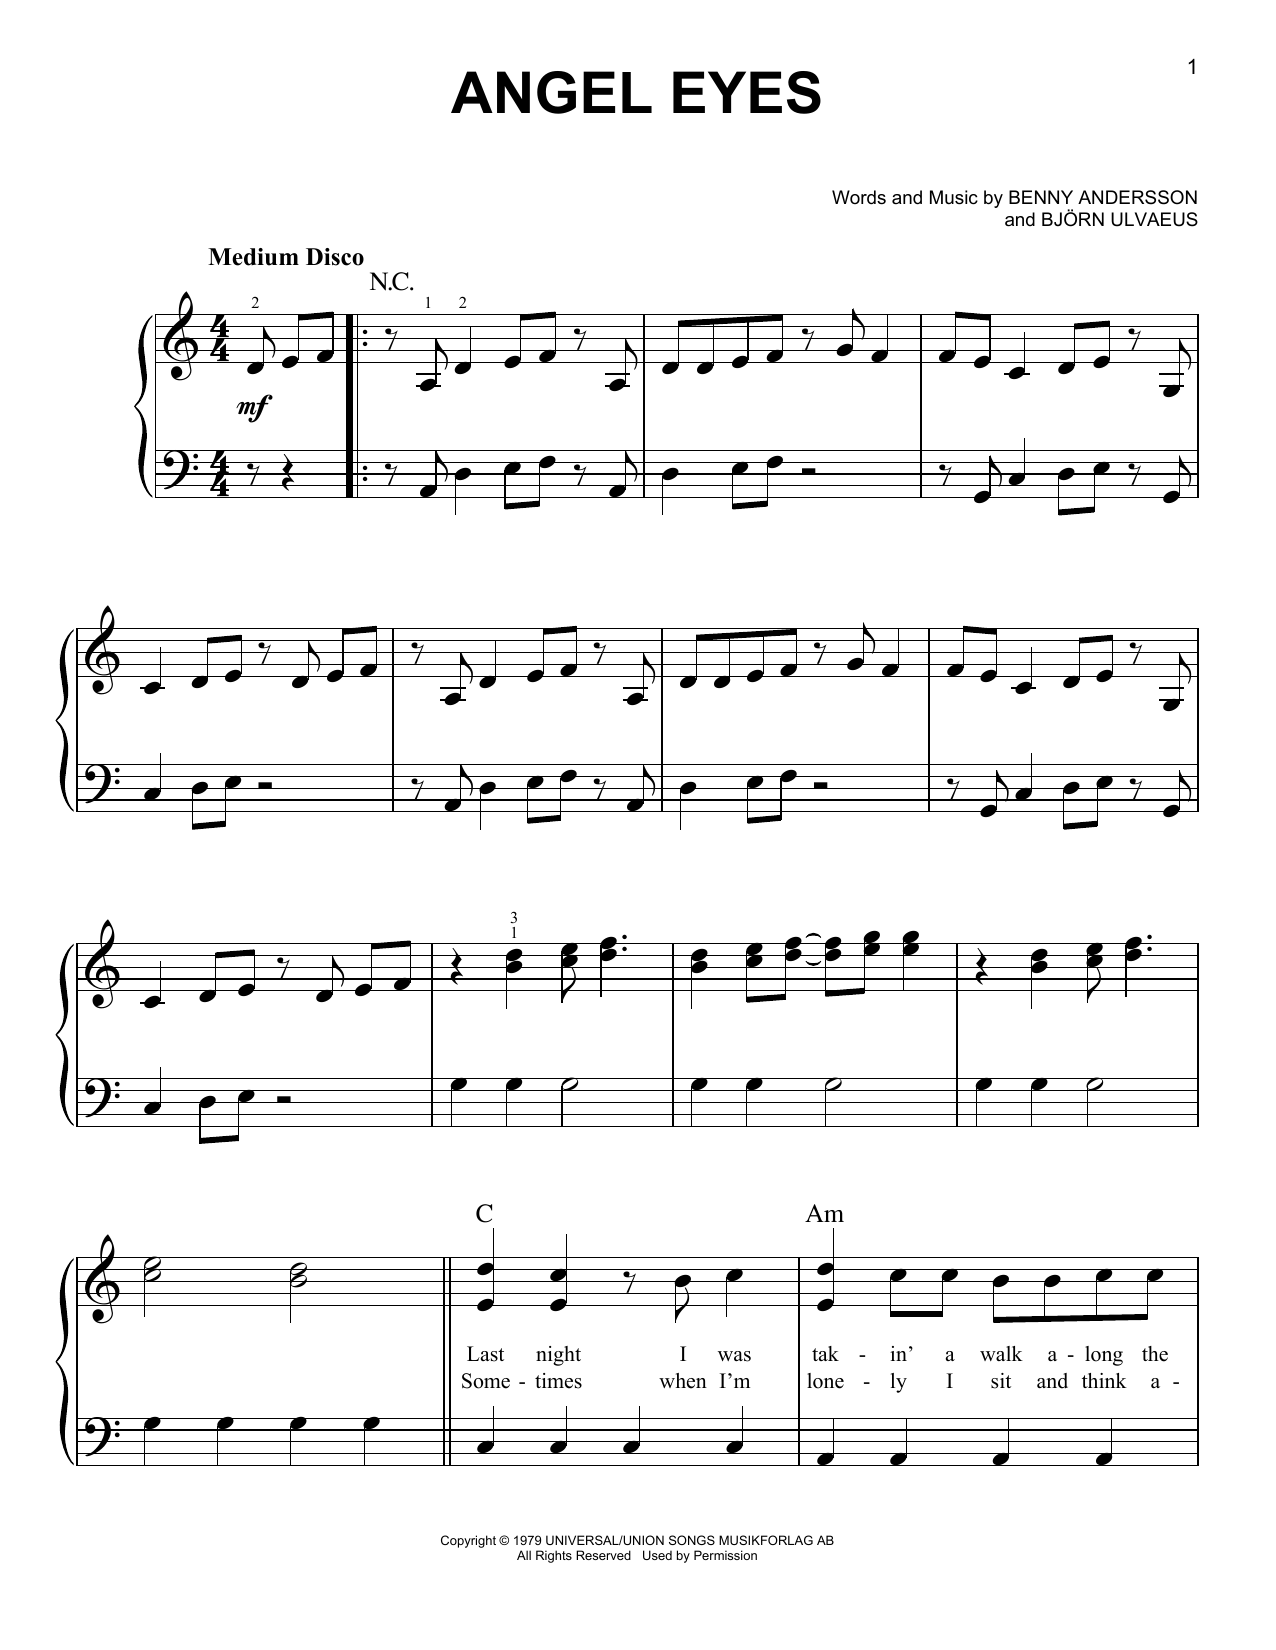 ABBA Angel Eyes (from Mamma Mia! Here We Go Again) sheet music notes and chords